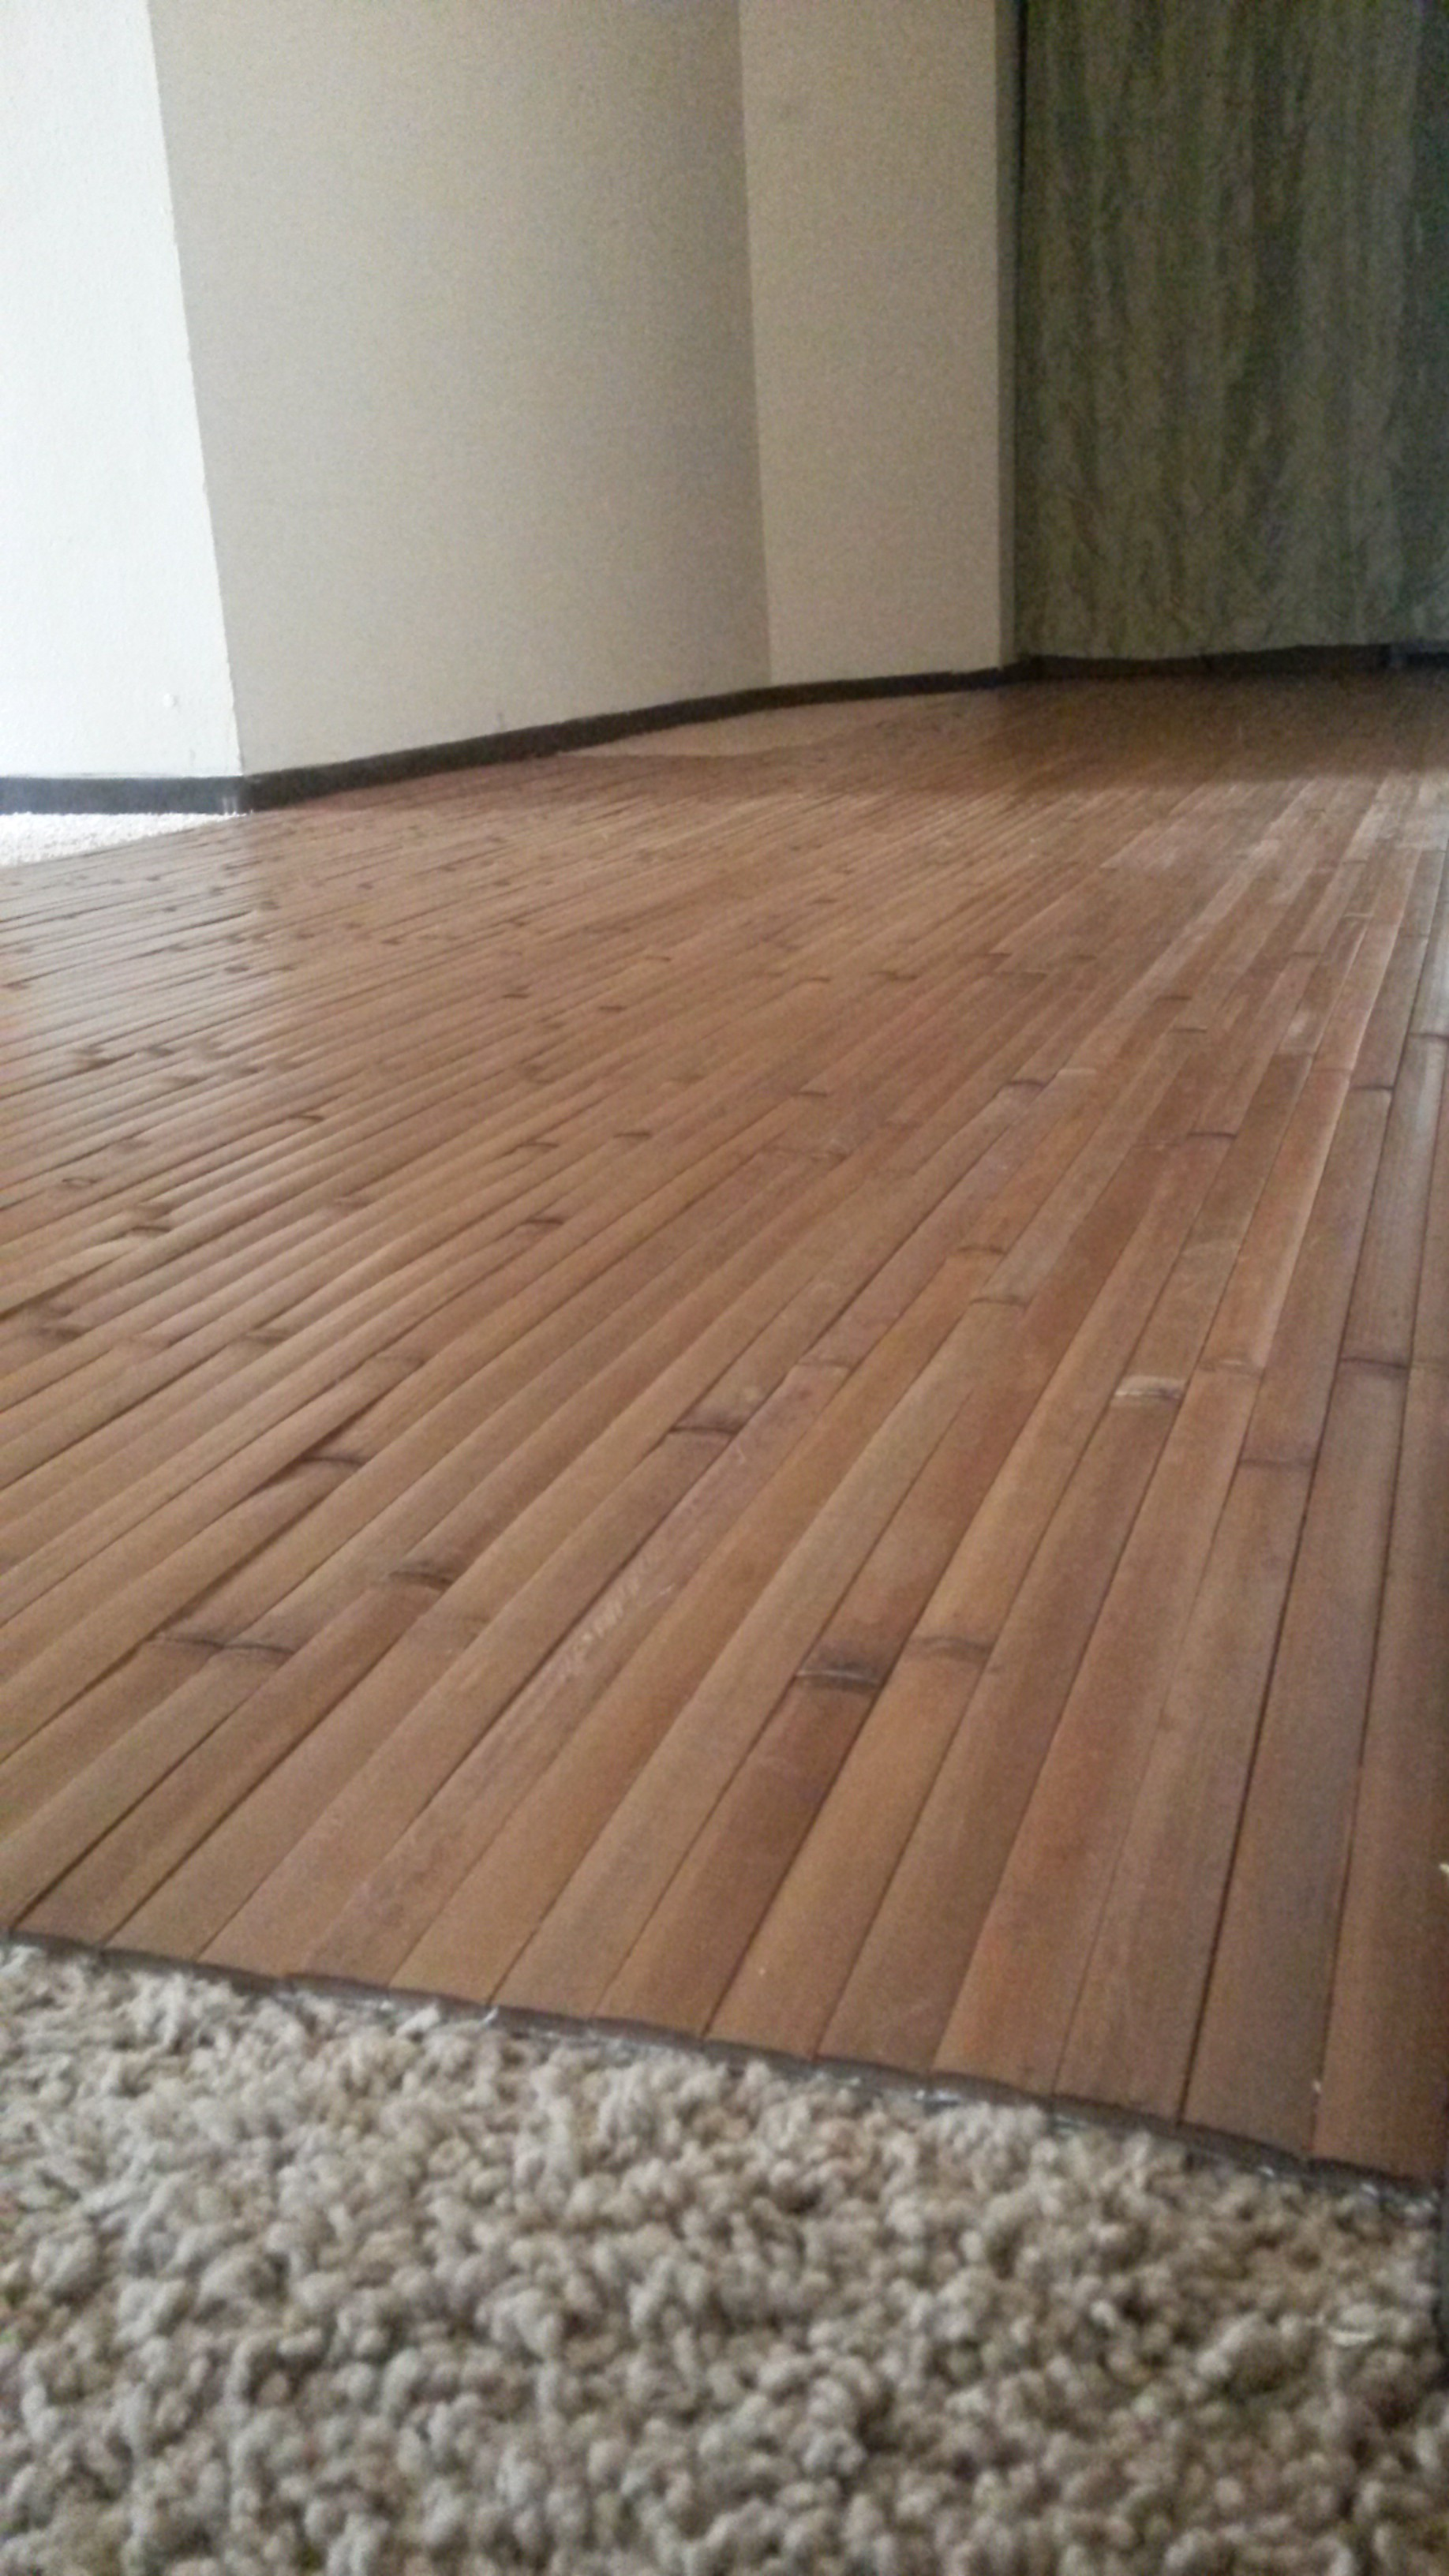 Best flooring over carpet solution ever skywaymom 8 x 4 bamboo wall panels make great flooring over carpet bamboo wall panels on the floor dailygadgetfo Images